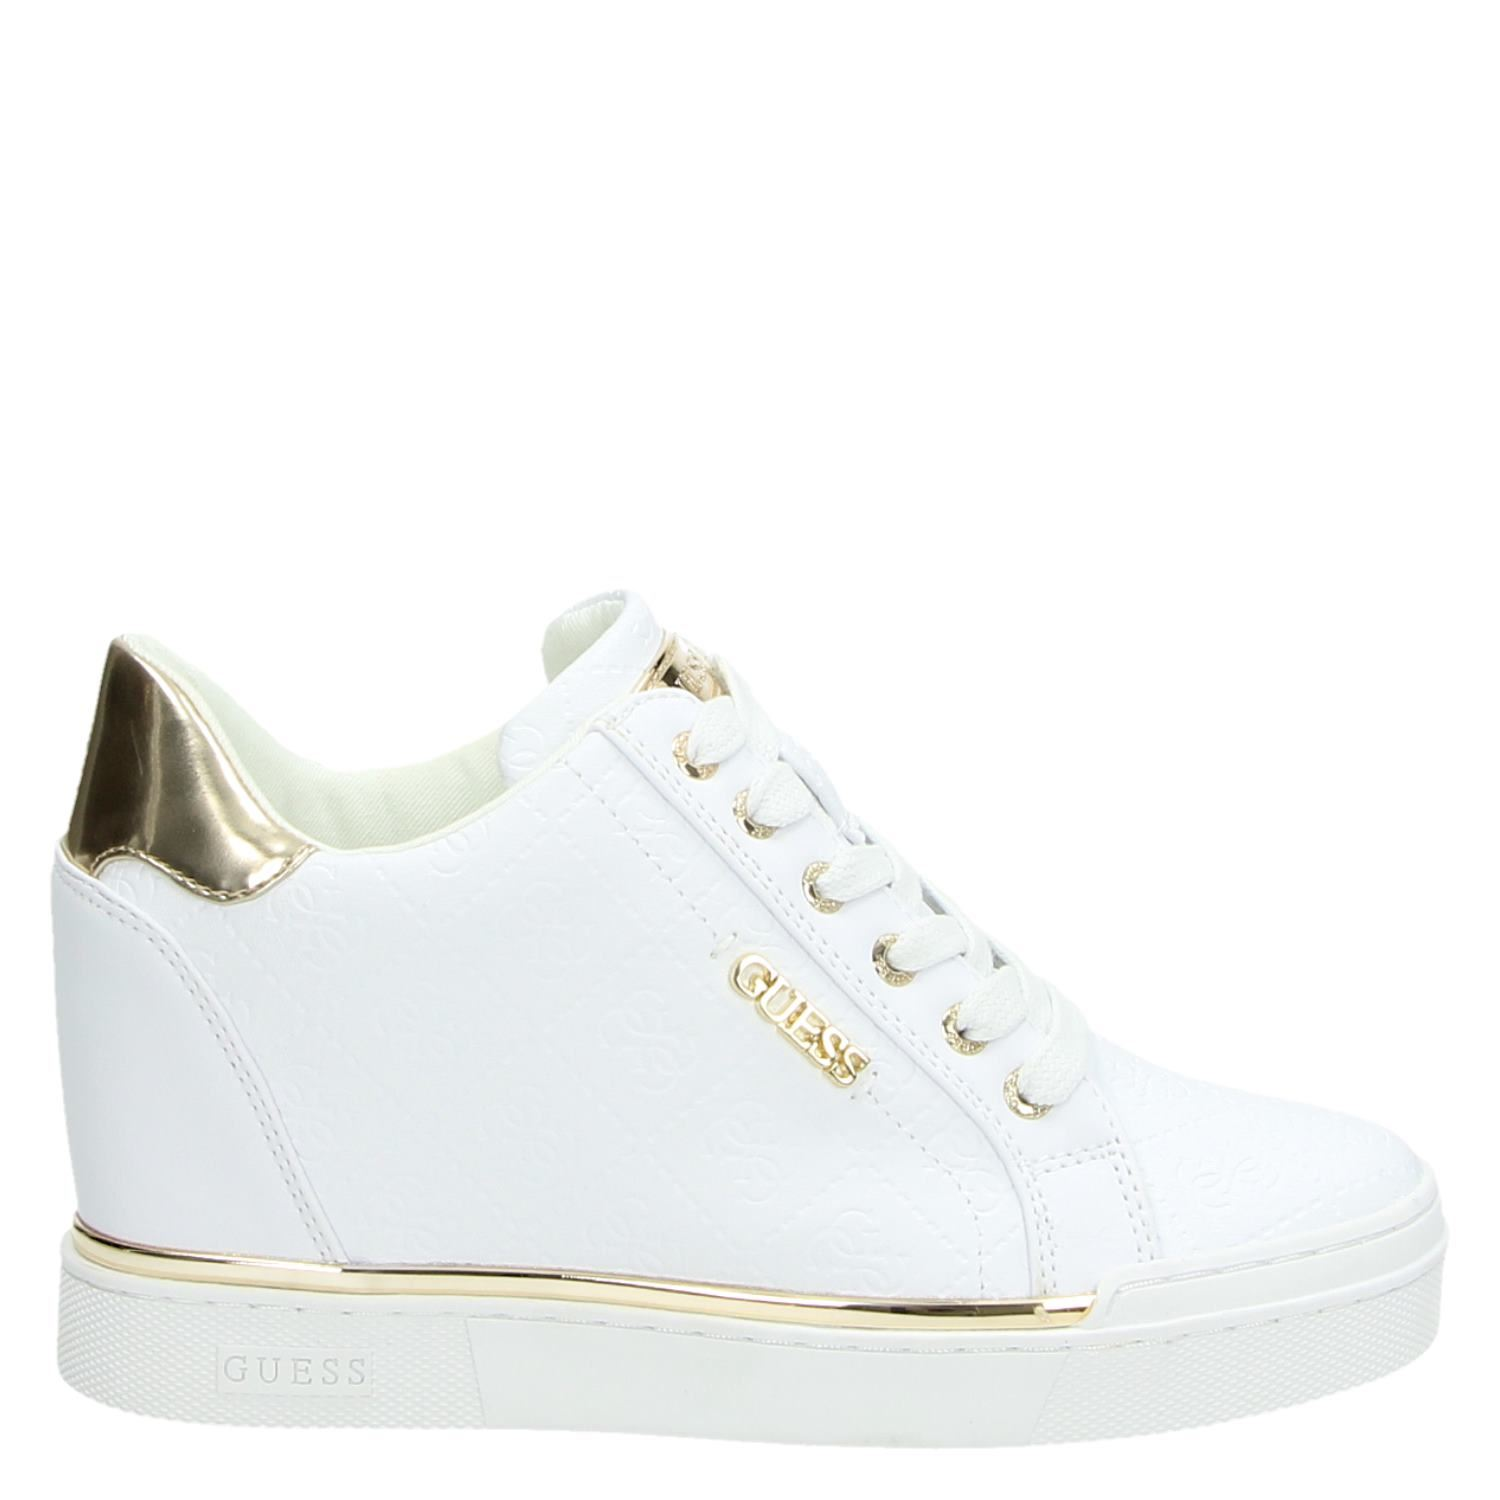 Dames Hoge Guess Sneakers Wit Flowurs 7bfY6yg